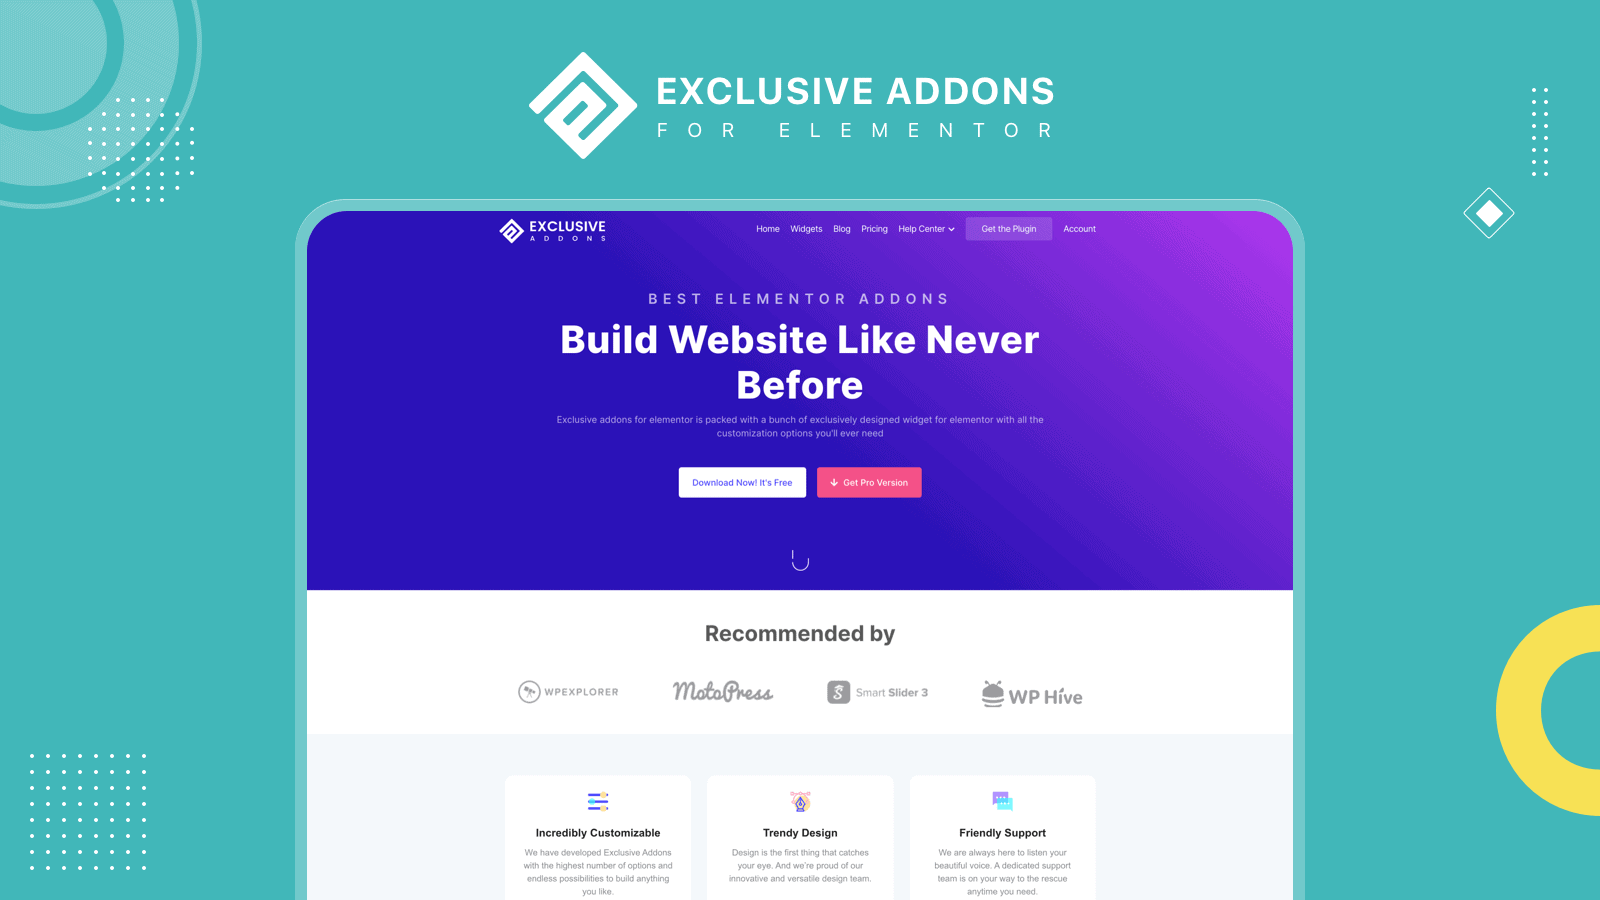 Exclusive Addons for Elementor